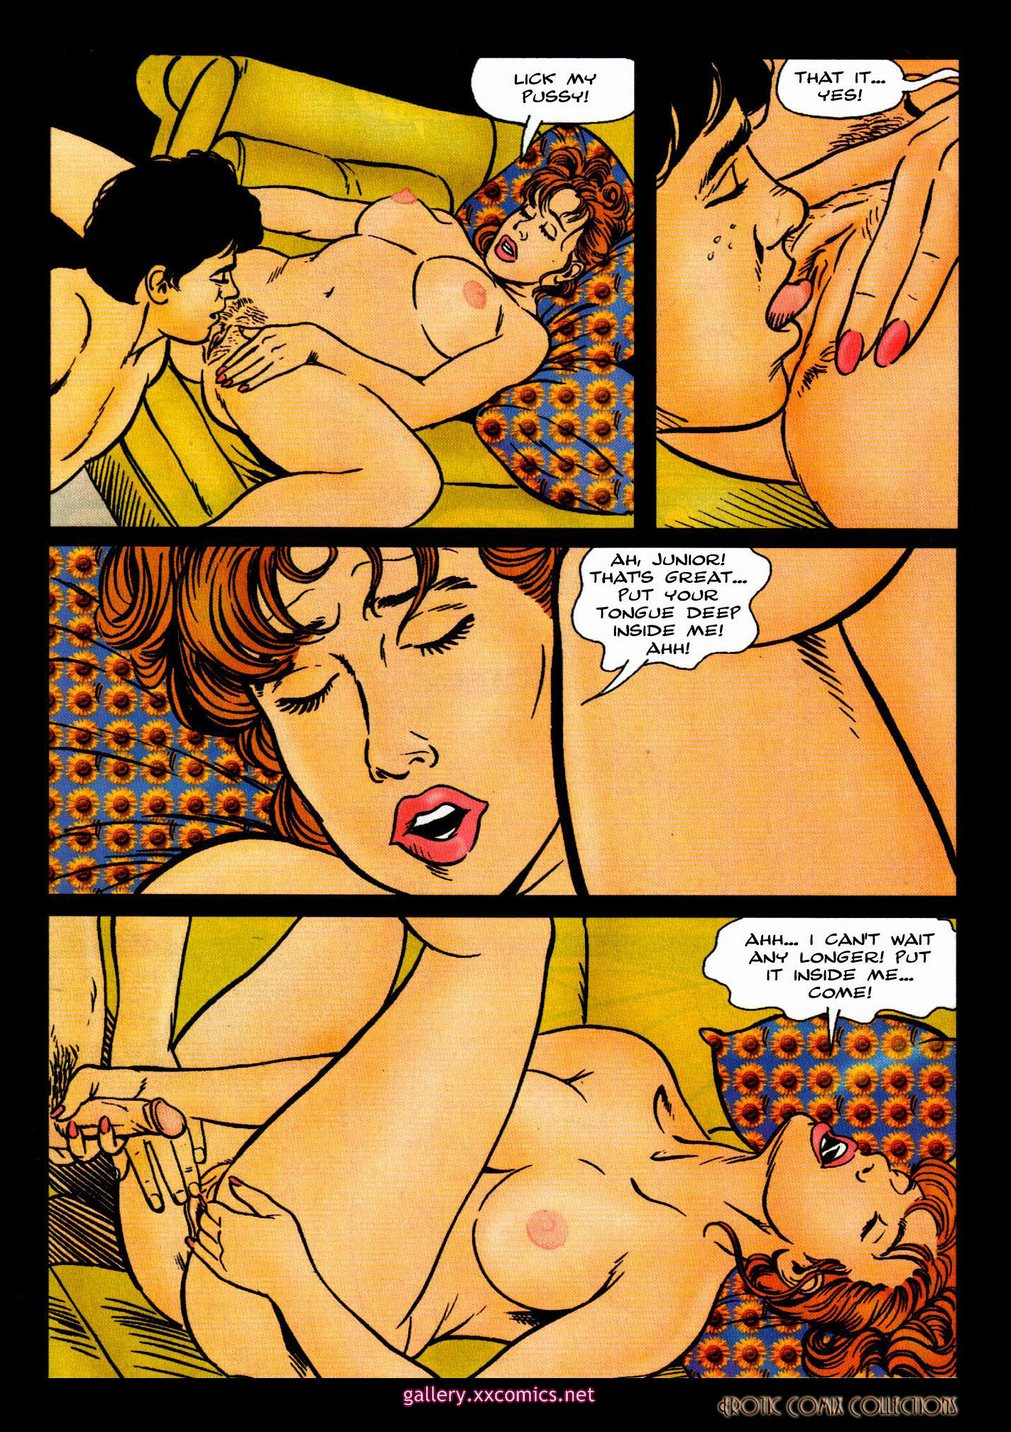 Erotic Comix Collection-Fitness